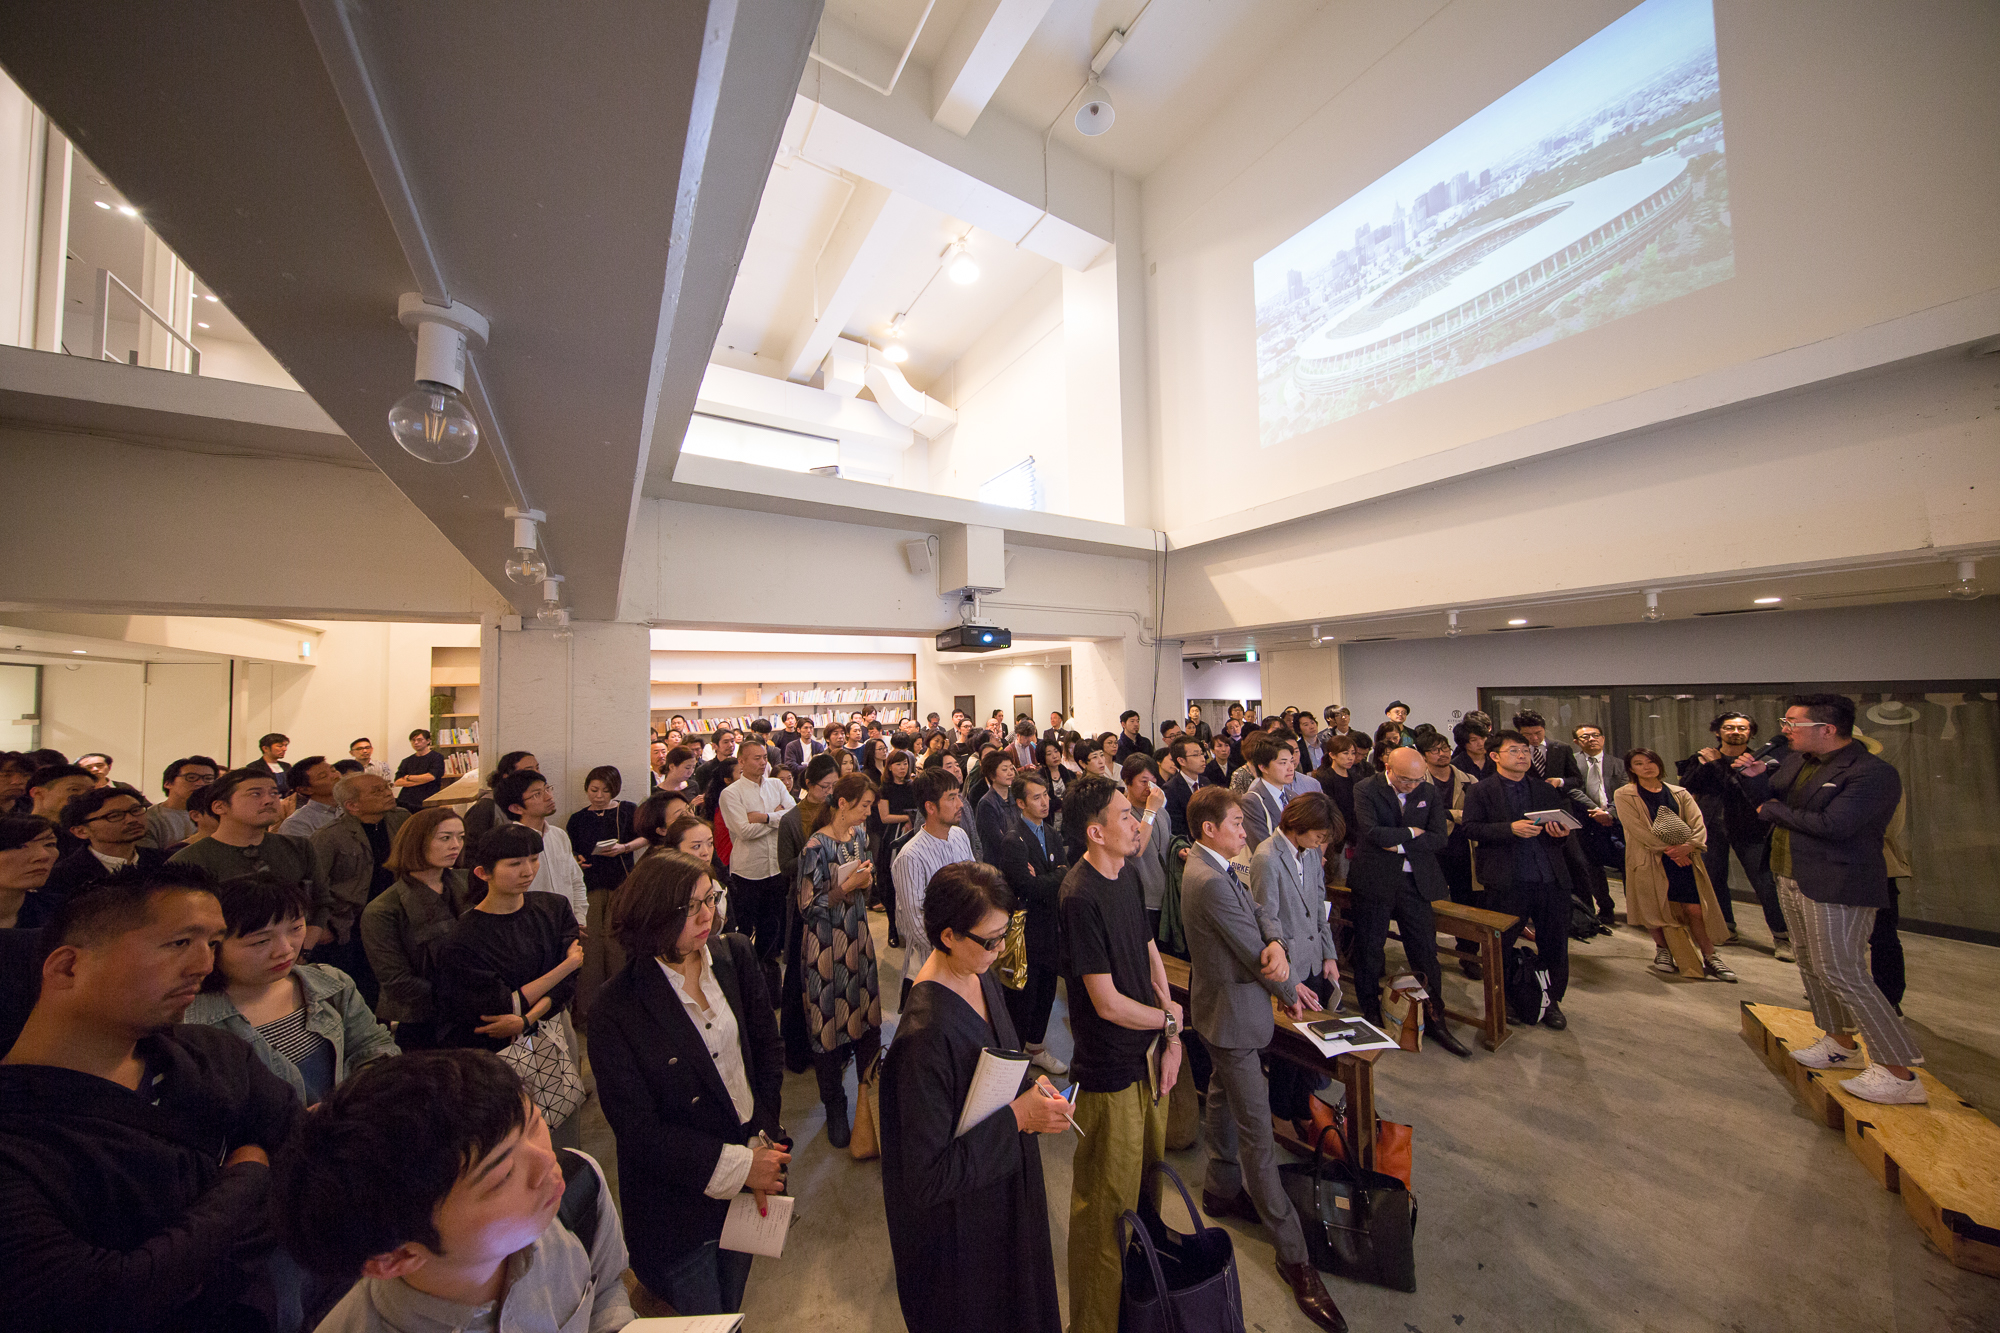 DESIGNART will be and annual event leading up to the Tokyo 2020 Olympics - and beyond!